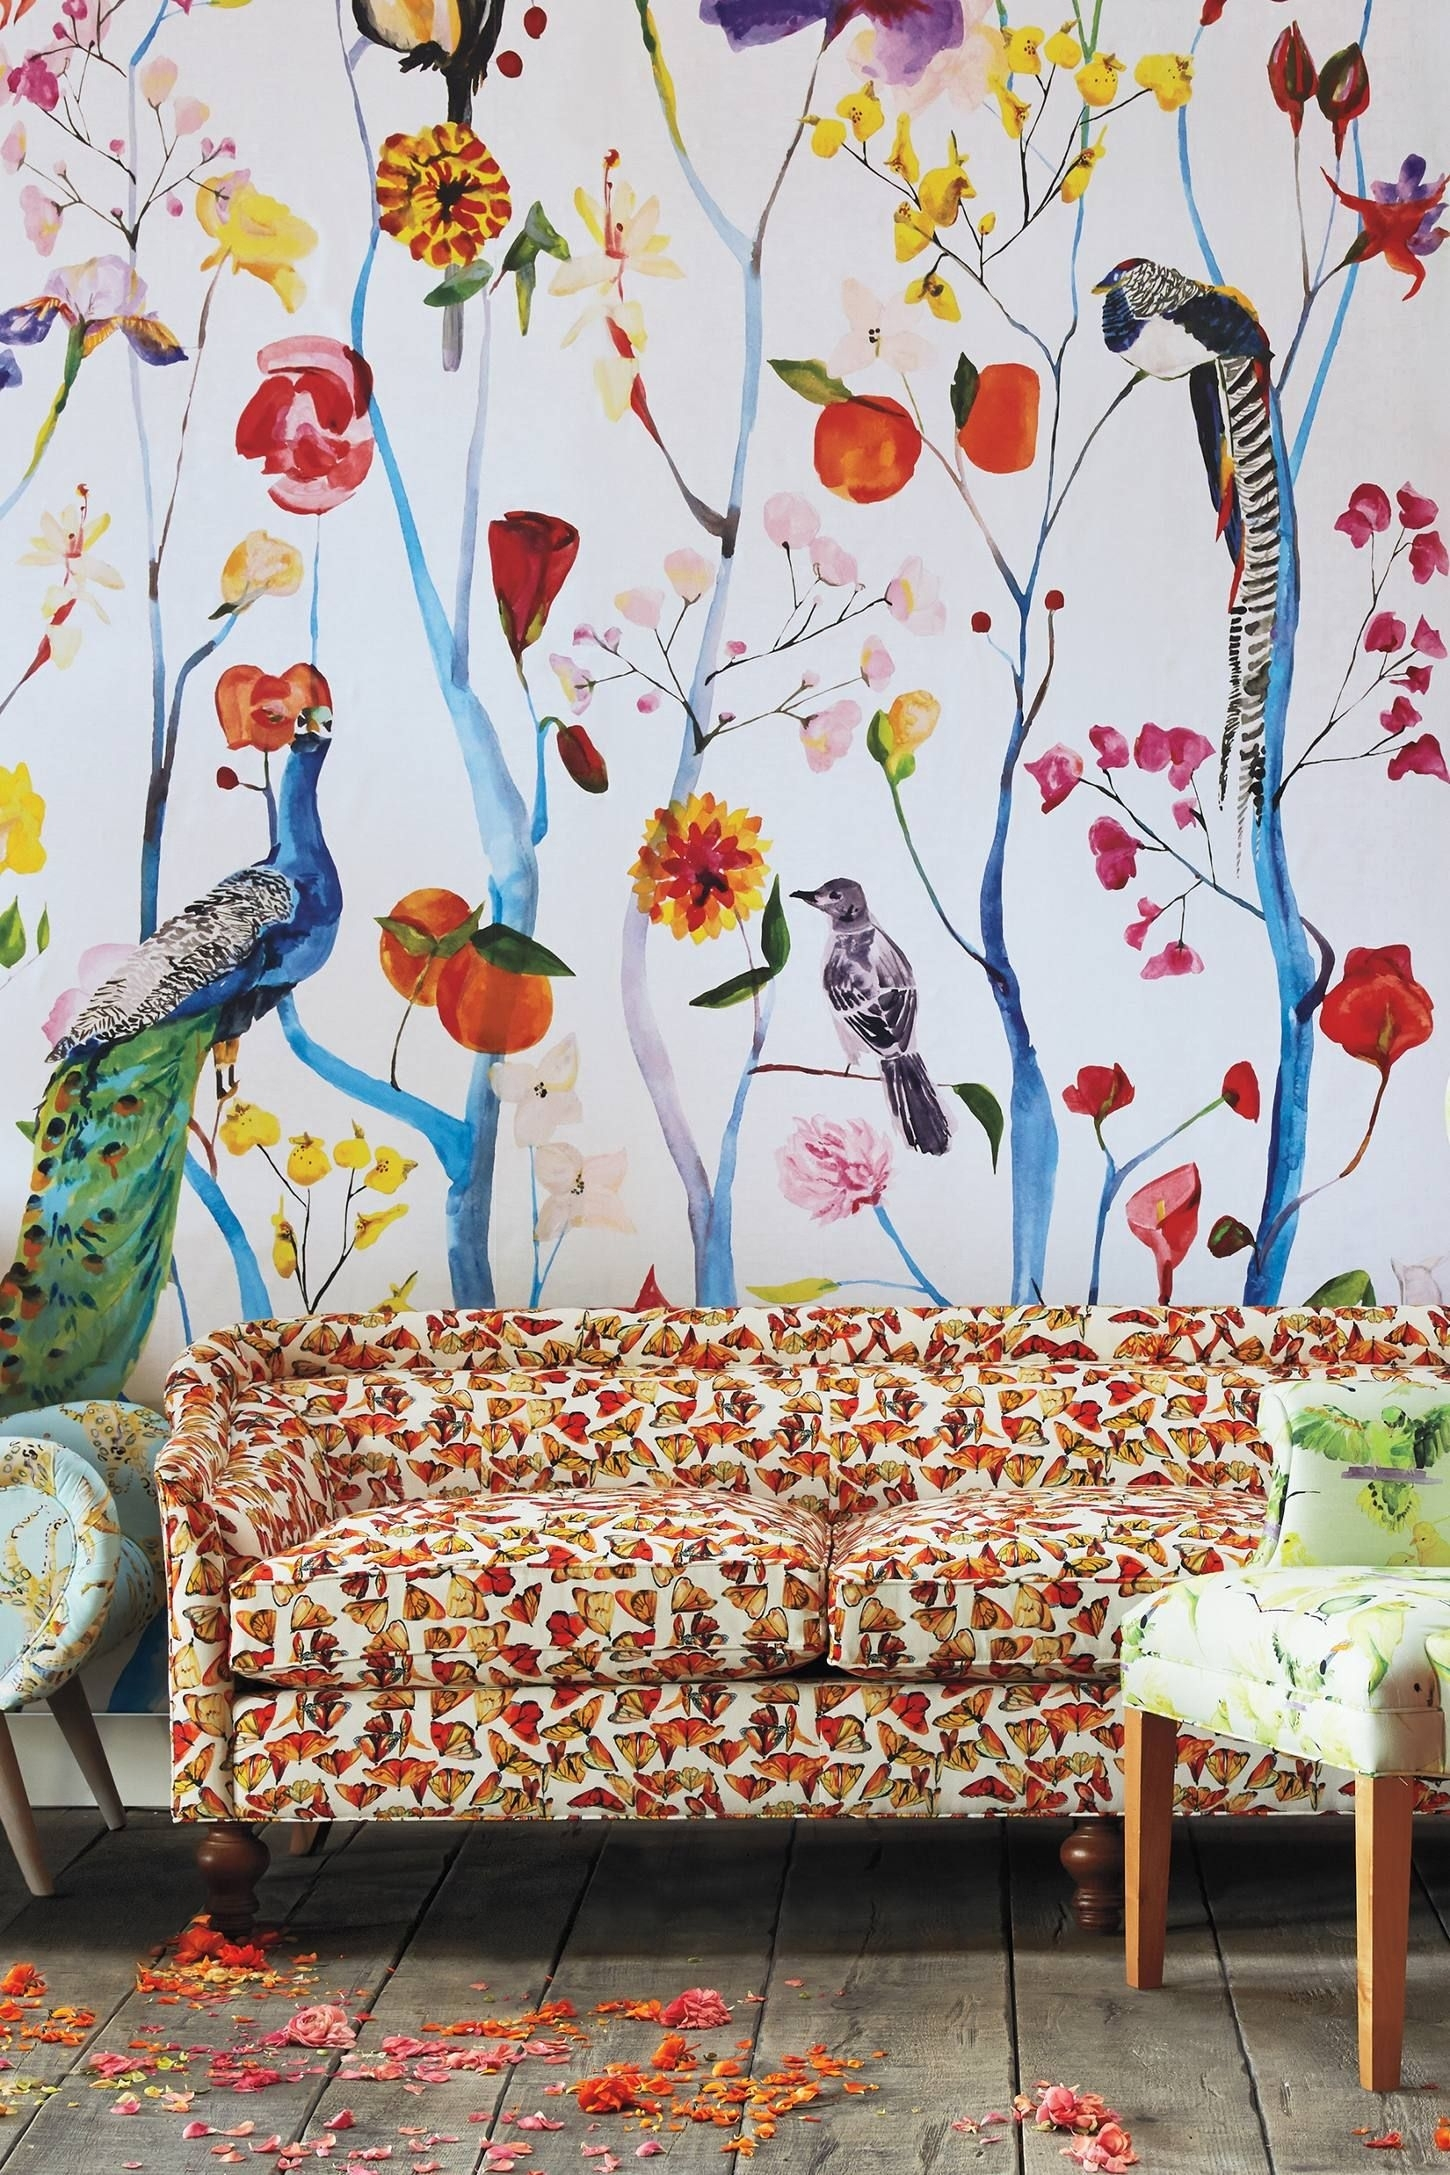 Garden Chinoiserie Mural | Home: Guest Room | Pinterest Throughout Best And Newest Anthropologie Wall Art (Gallery 1 of 20)